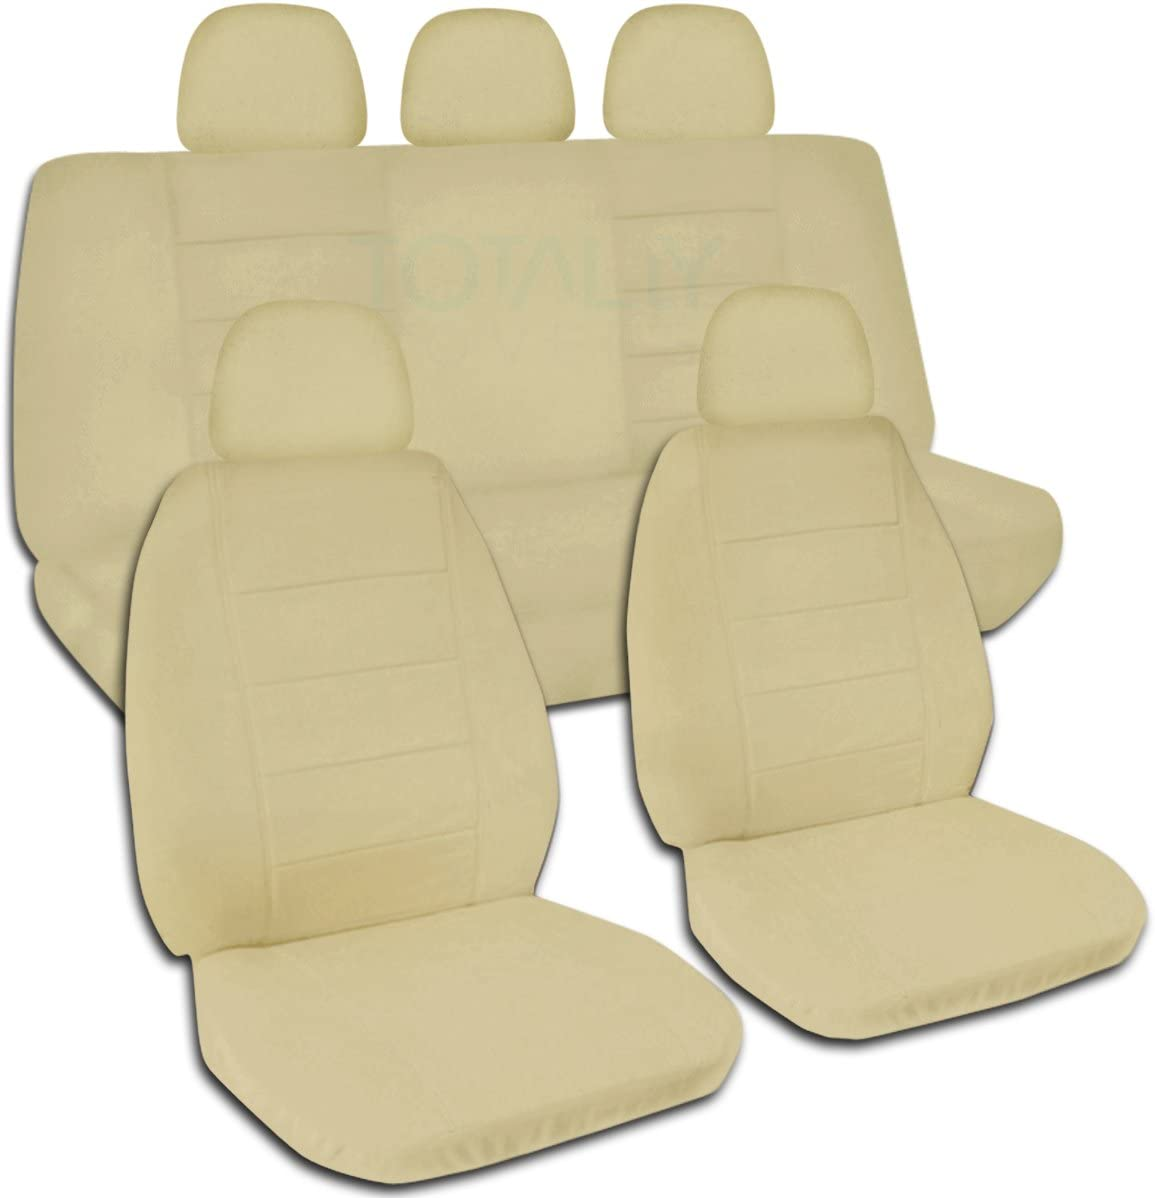 Totally Covers Solid Color Car Seat Covers w 5 (2 Front + 3 Rear) Headrest Covers: Sand - Universal Fit - Full Set - Buckets & Bench - Option for Airbag/Seat Belt/Armrest/Lever/Split Compatible